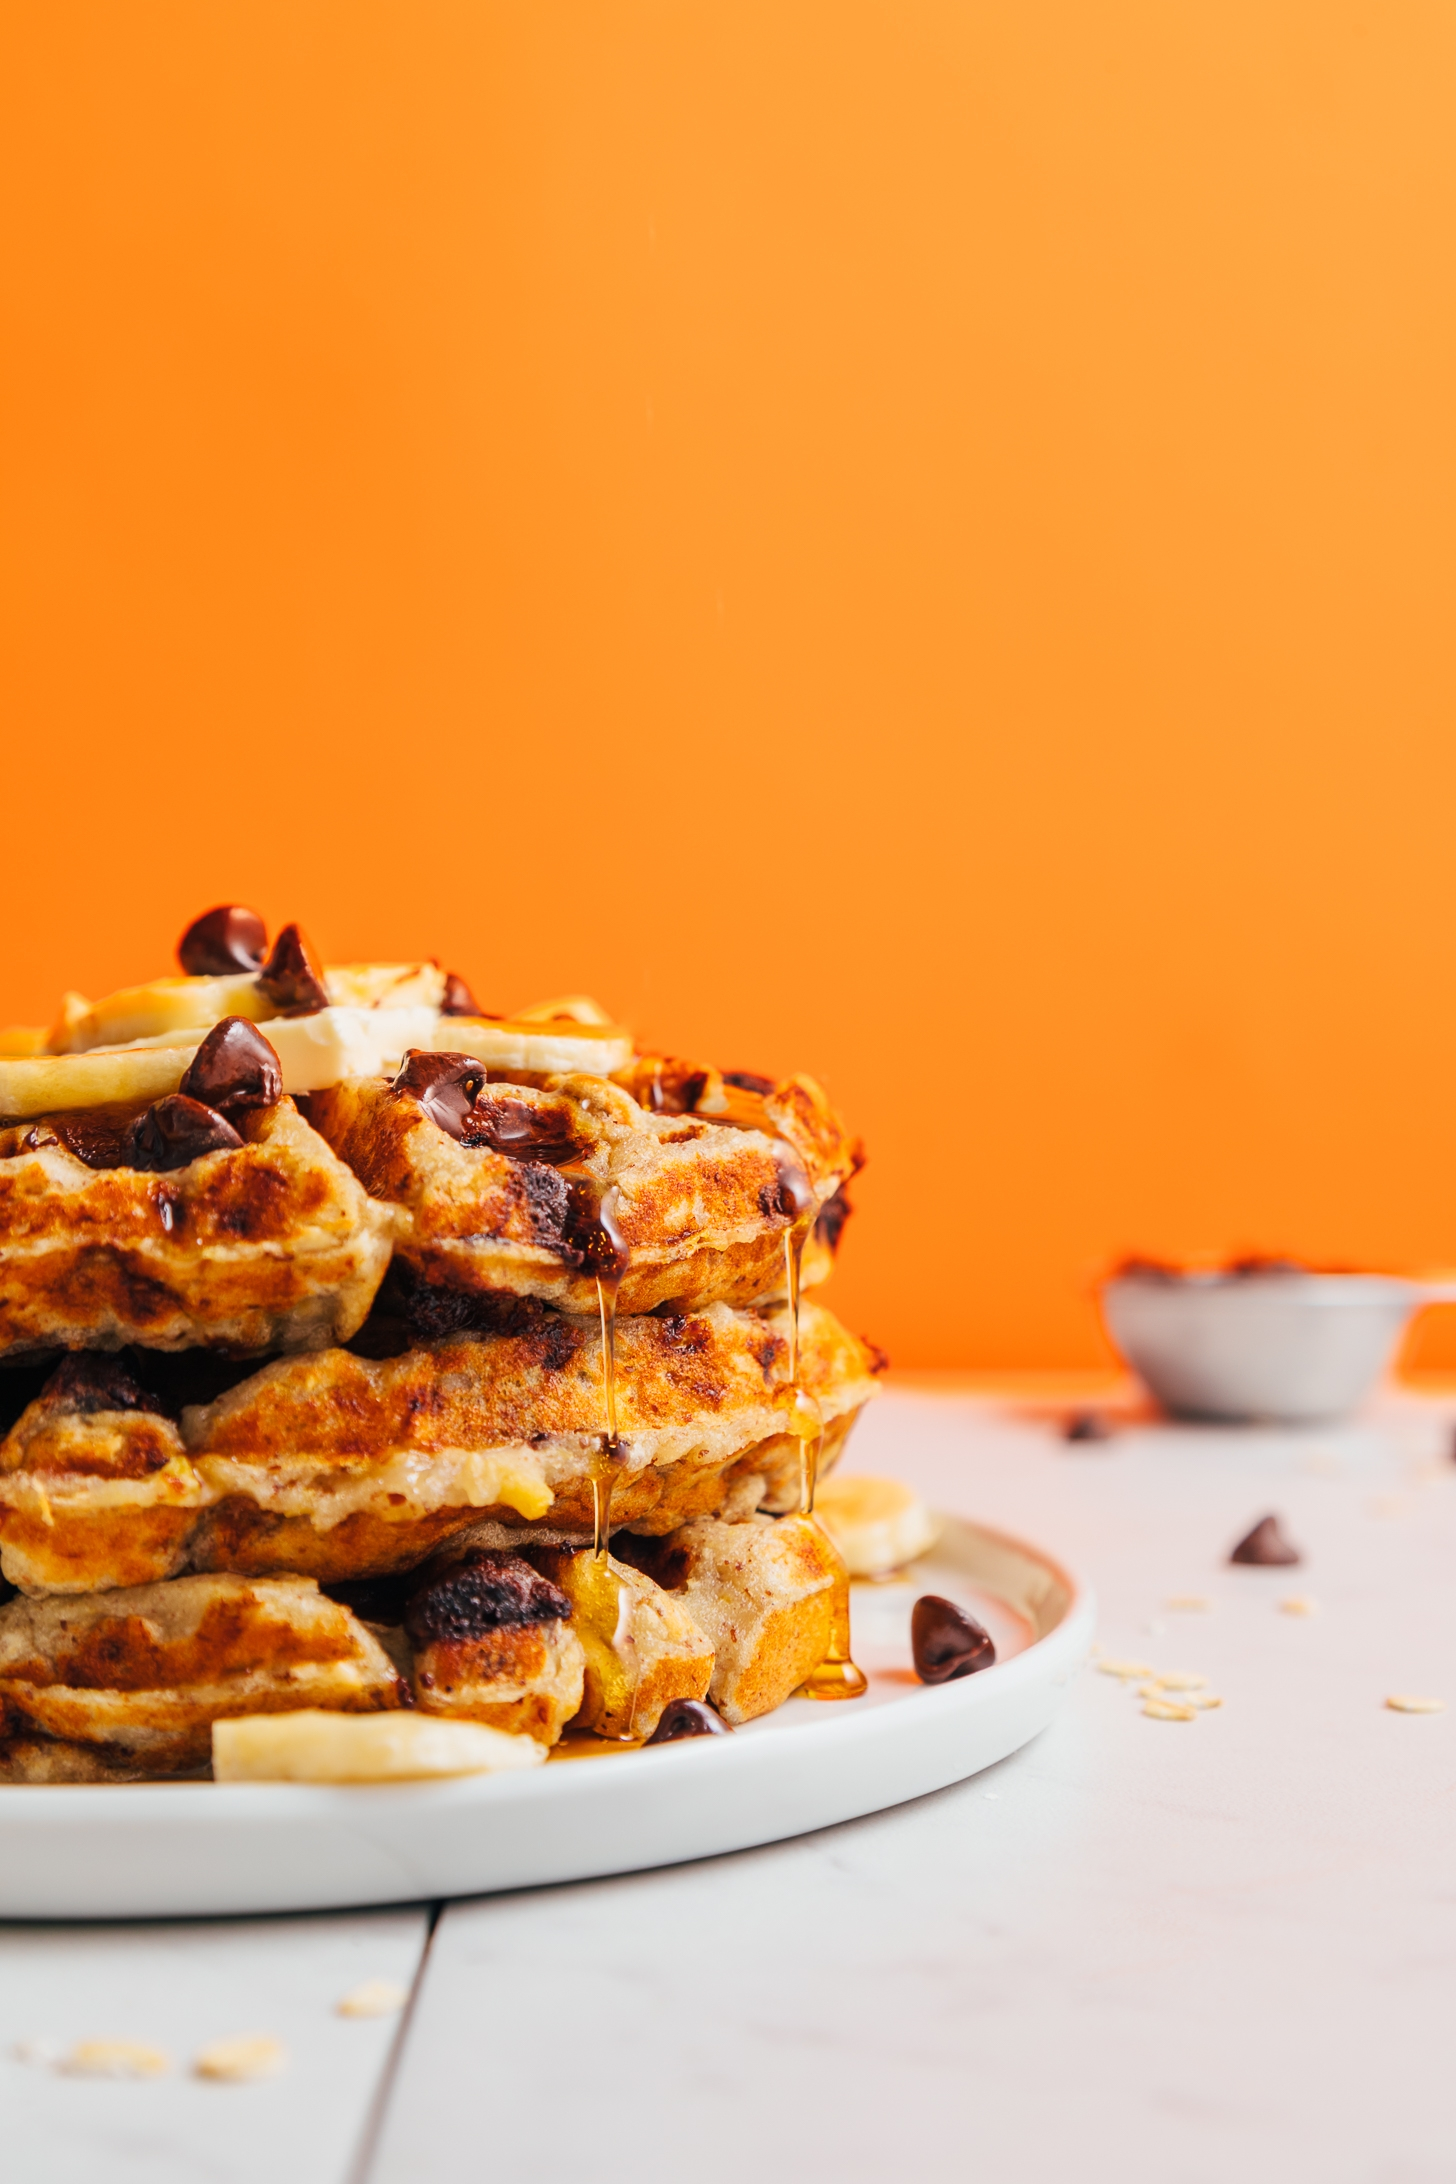 Maple syrup dripping off a stack of Chocolate Chip Banana Bread Waffles